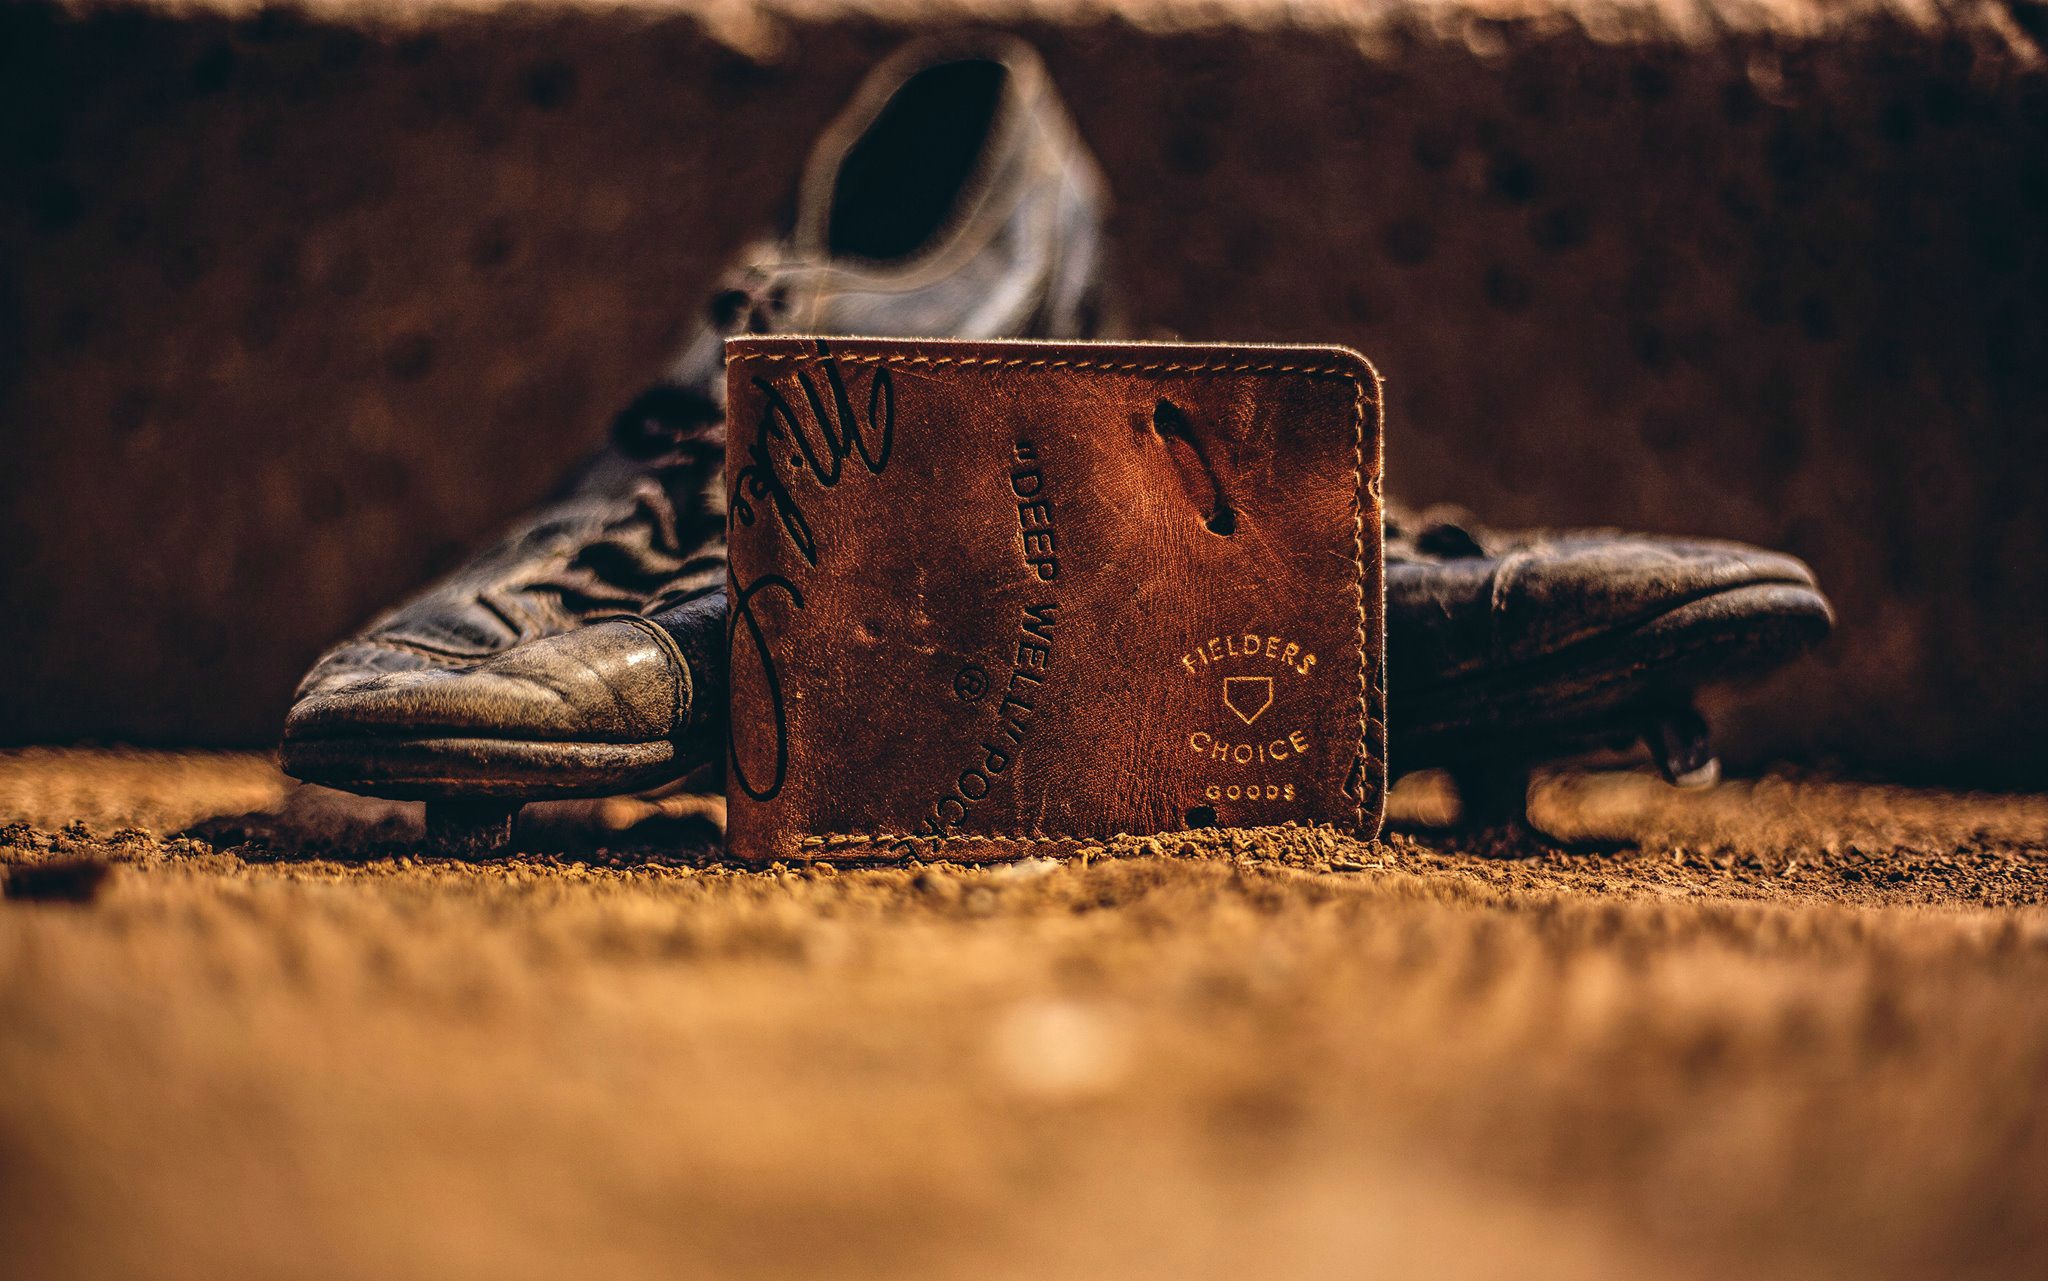 Fielder's Choice Vintage Baseball Glove Wallets